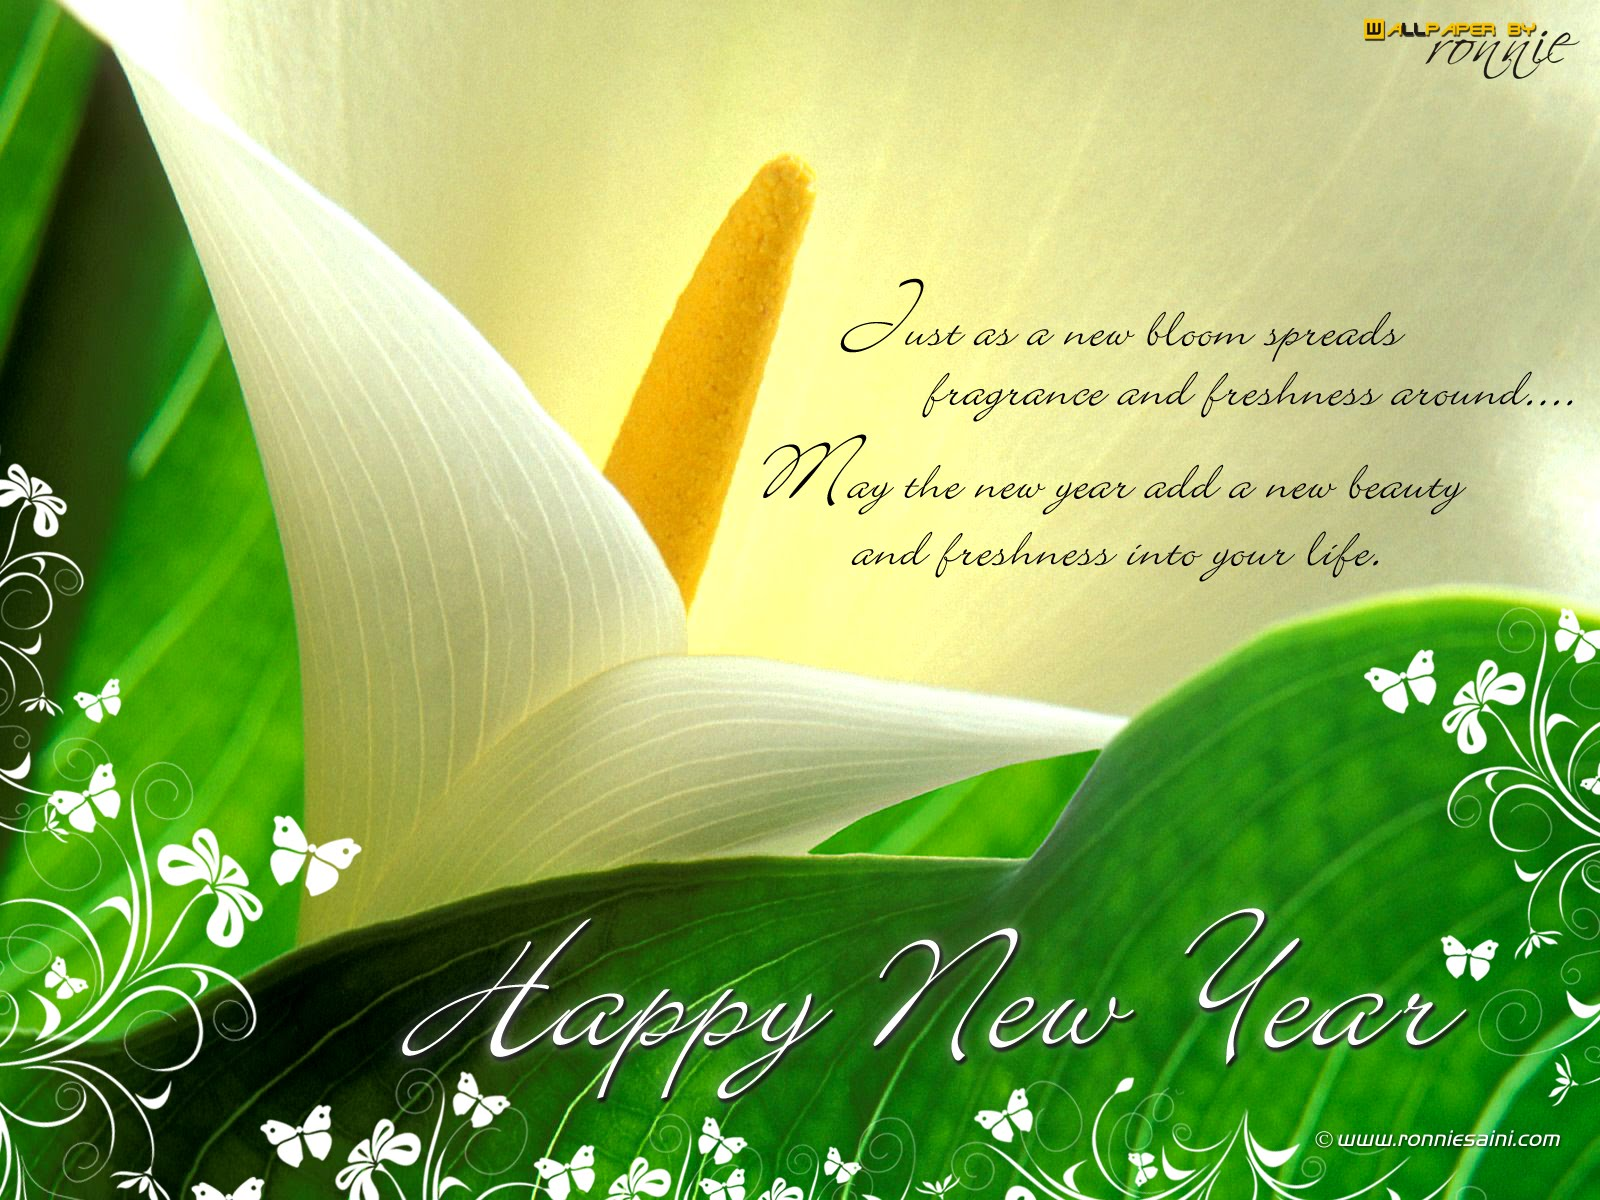 Click on Image to enlarge it. 1600 x 1200.Free Happy New Year Greeting Message